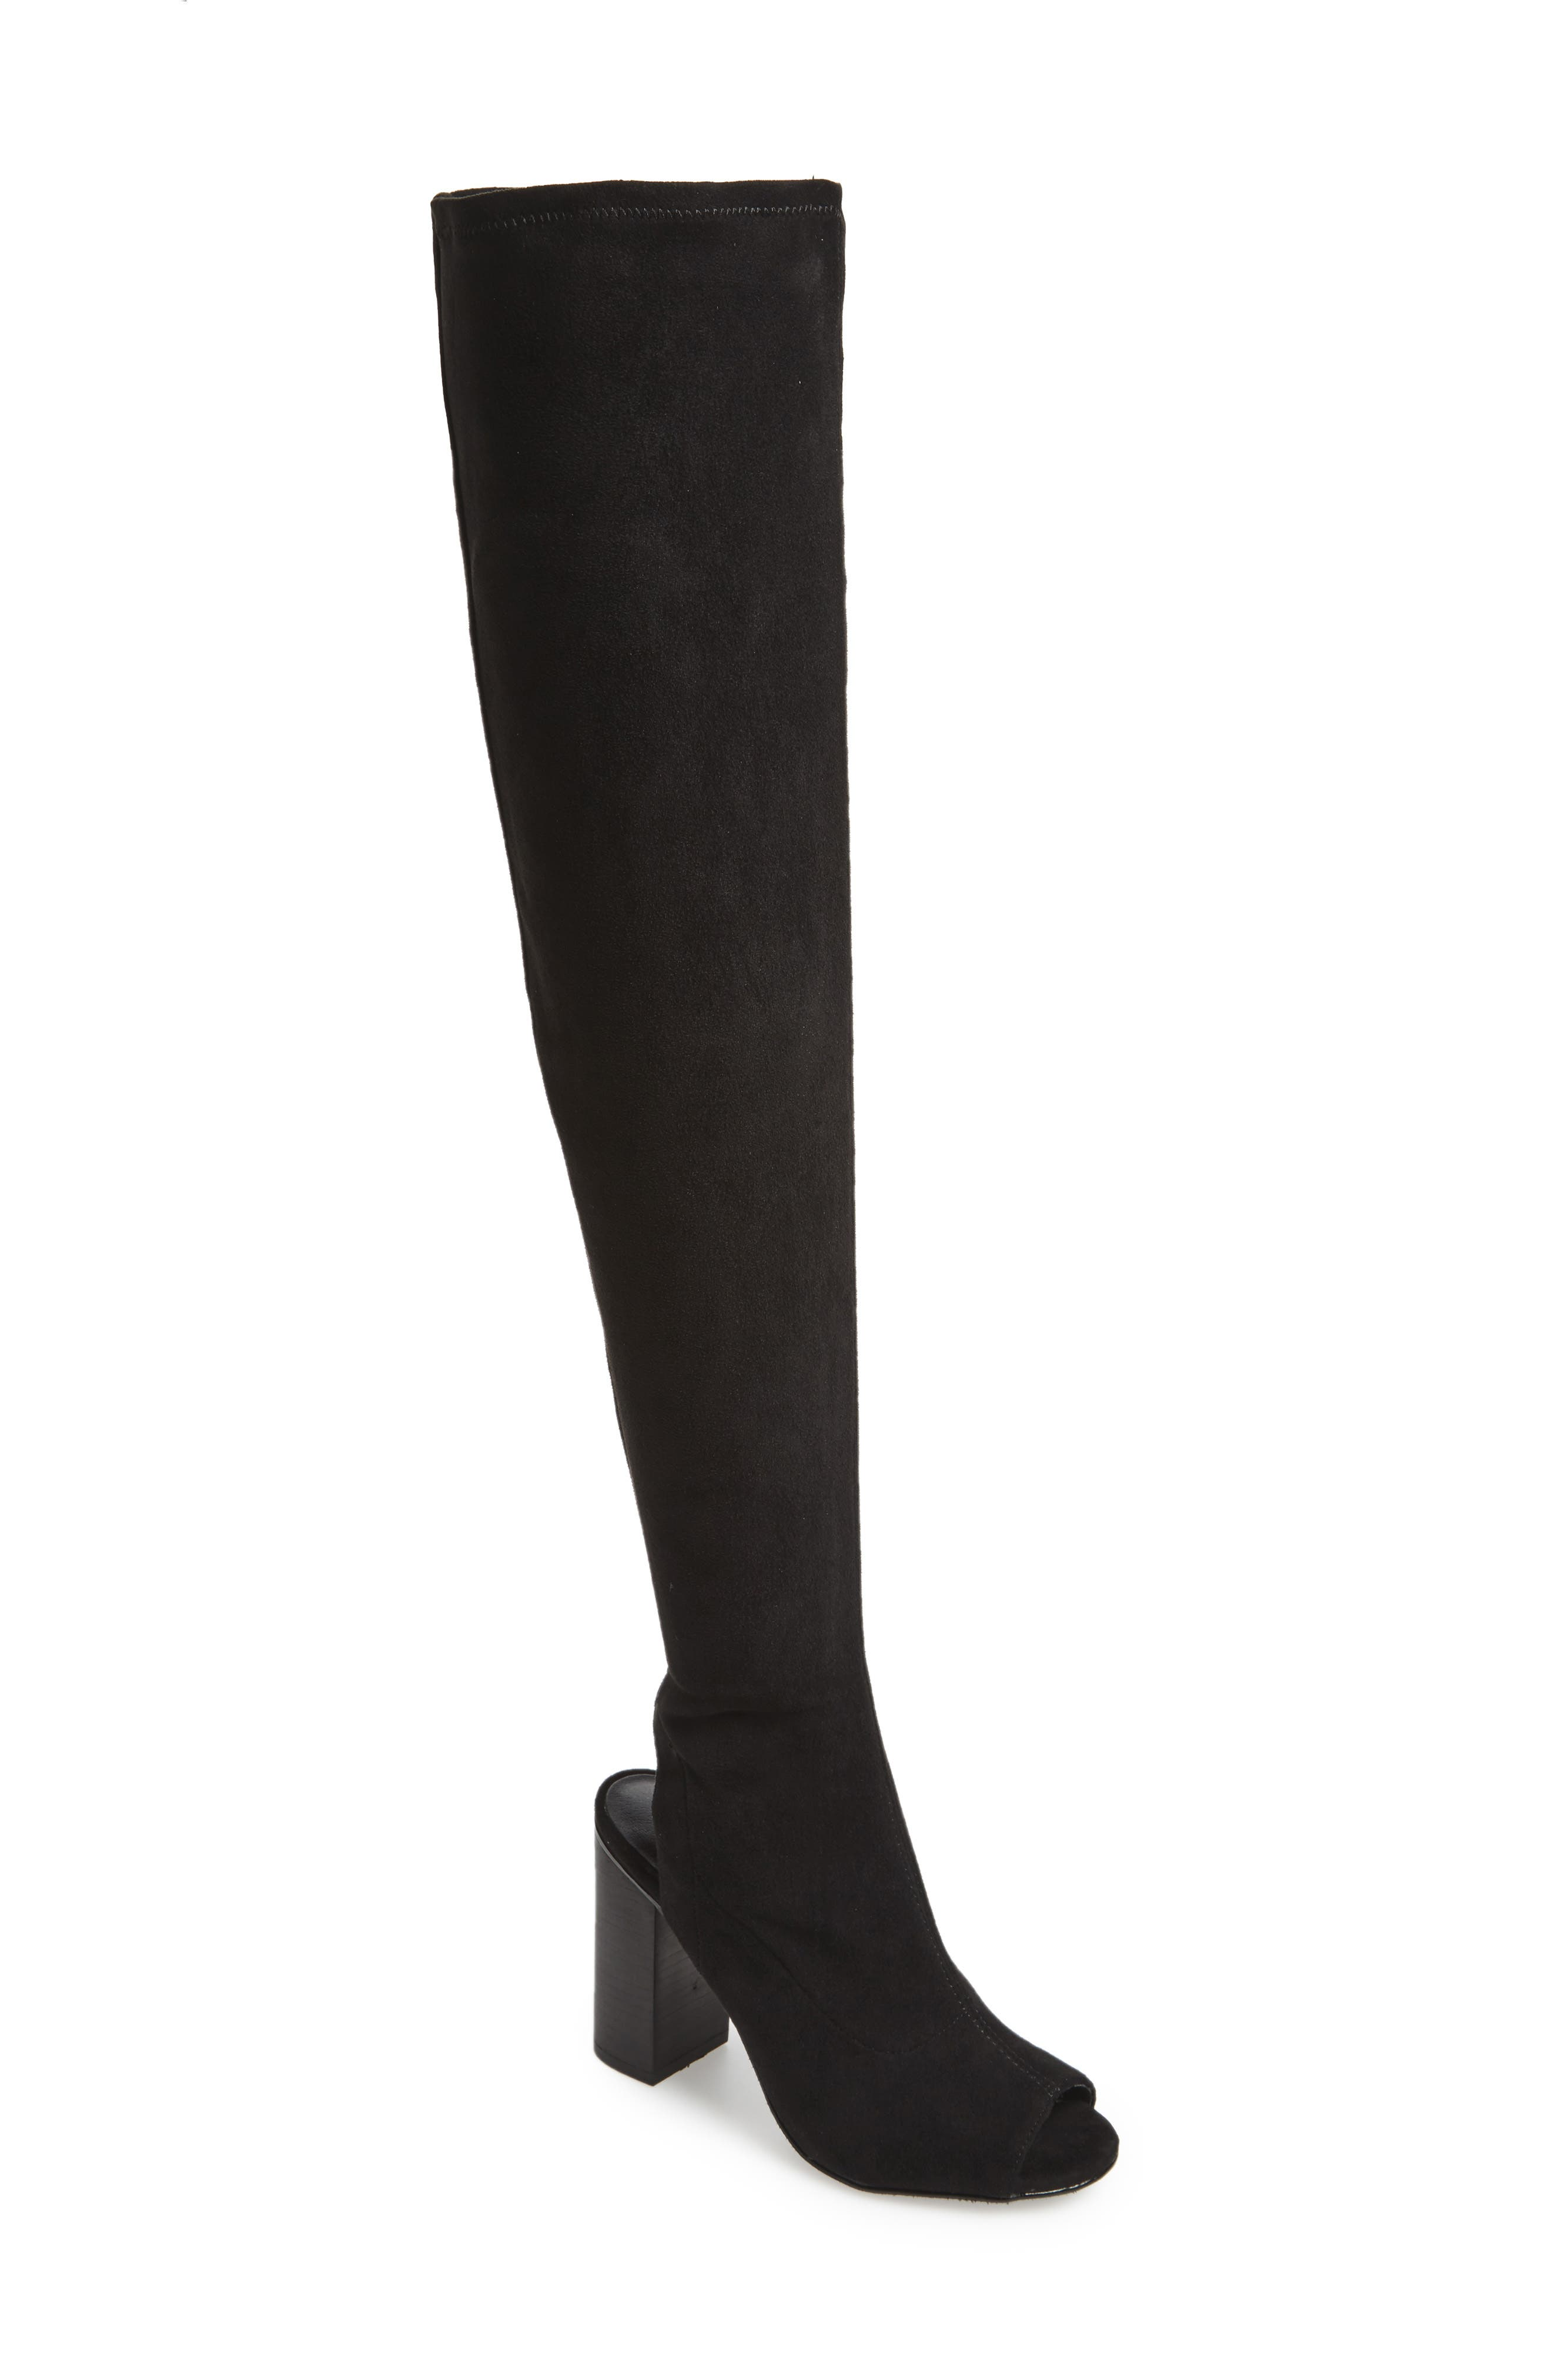 Robyn Cutout Over the Knee Boot,                         Main,                         color, 001